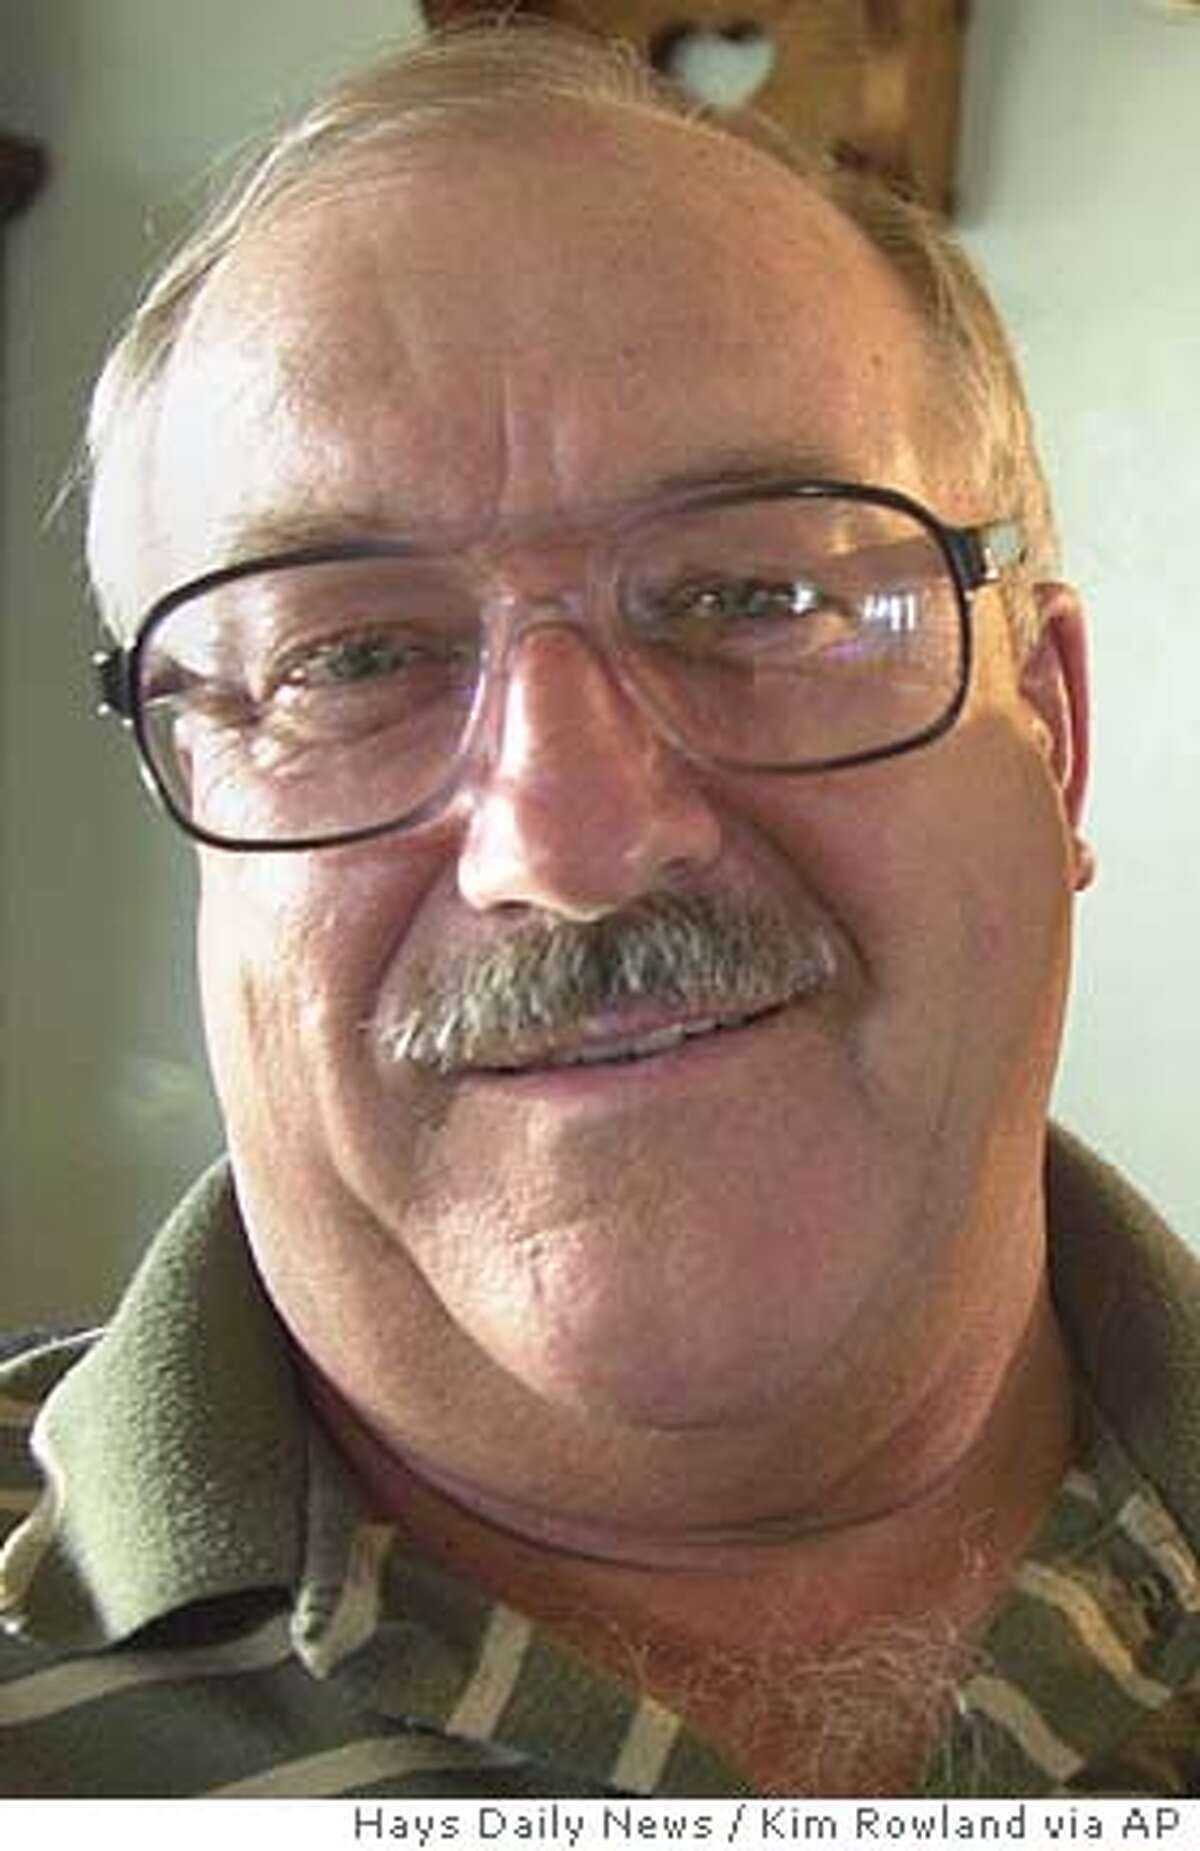 Larry Thurlow, of Bogue, Kan., and fellow veterans who served in a swift boat unit with Joh Kerry in Vietnam, formed a group called Swift Boat Veterans for Truth and have produced a commercial and a short documentary aiming to discredit Kerry's war heroism. AP Photo/Hays Daily News/Kim Rowland